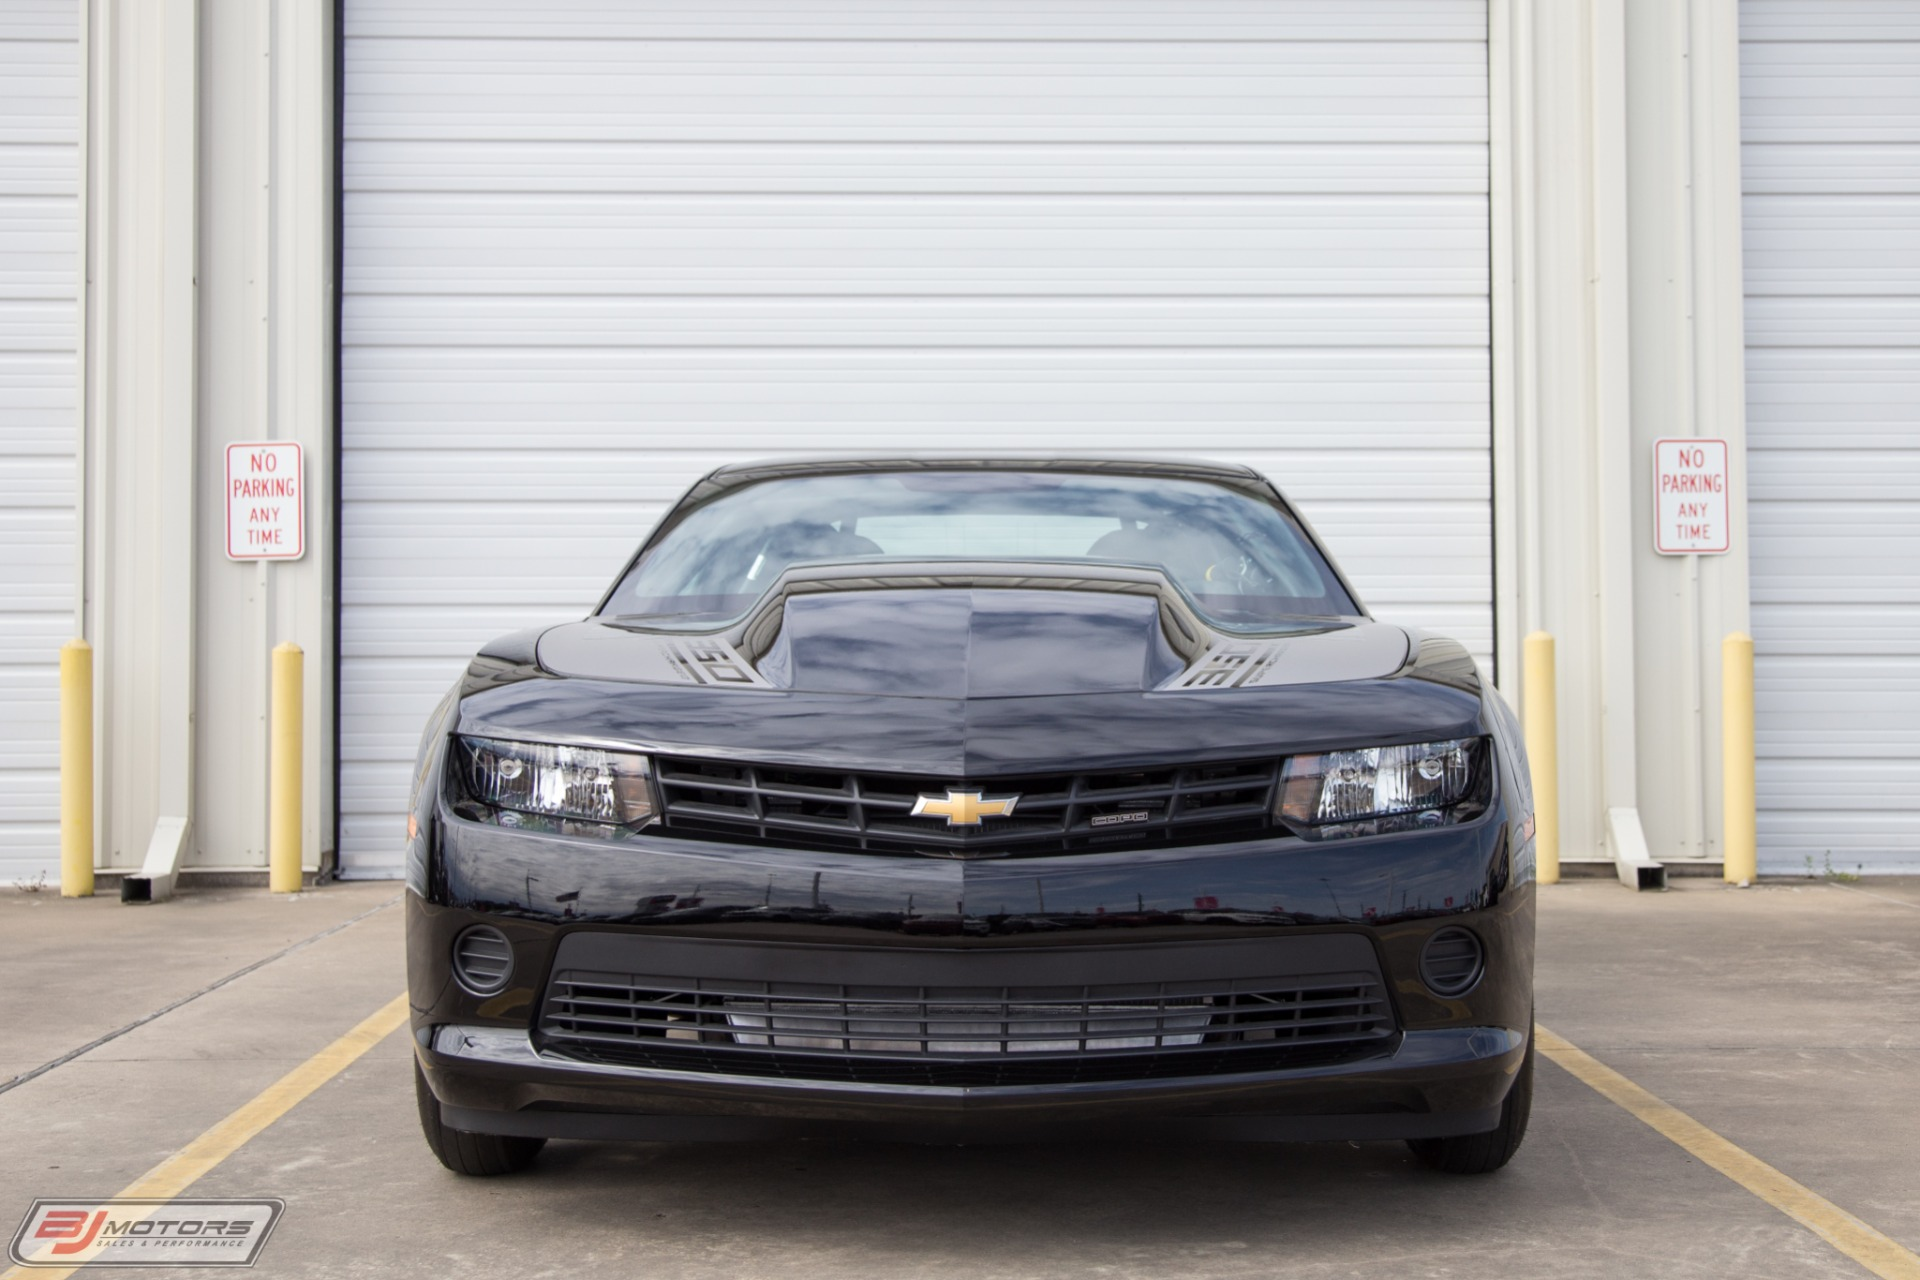 New-2015-Chevrolet-COPO-Camaro--66-of-69